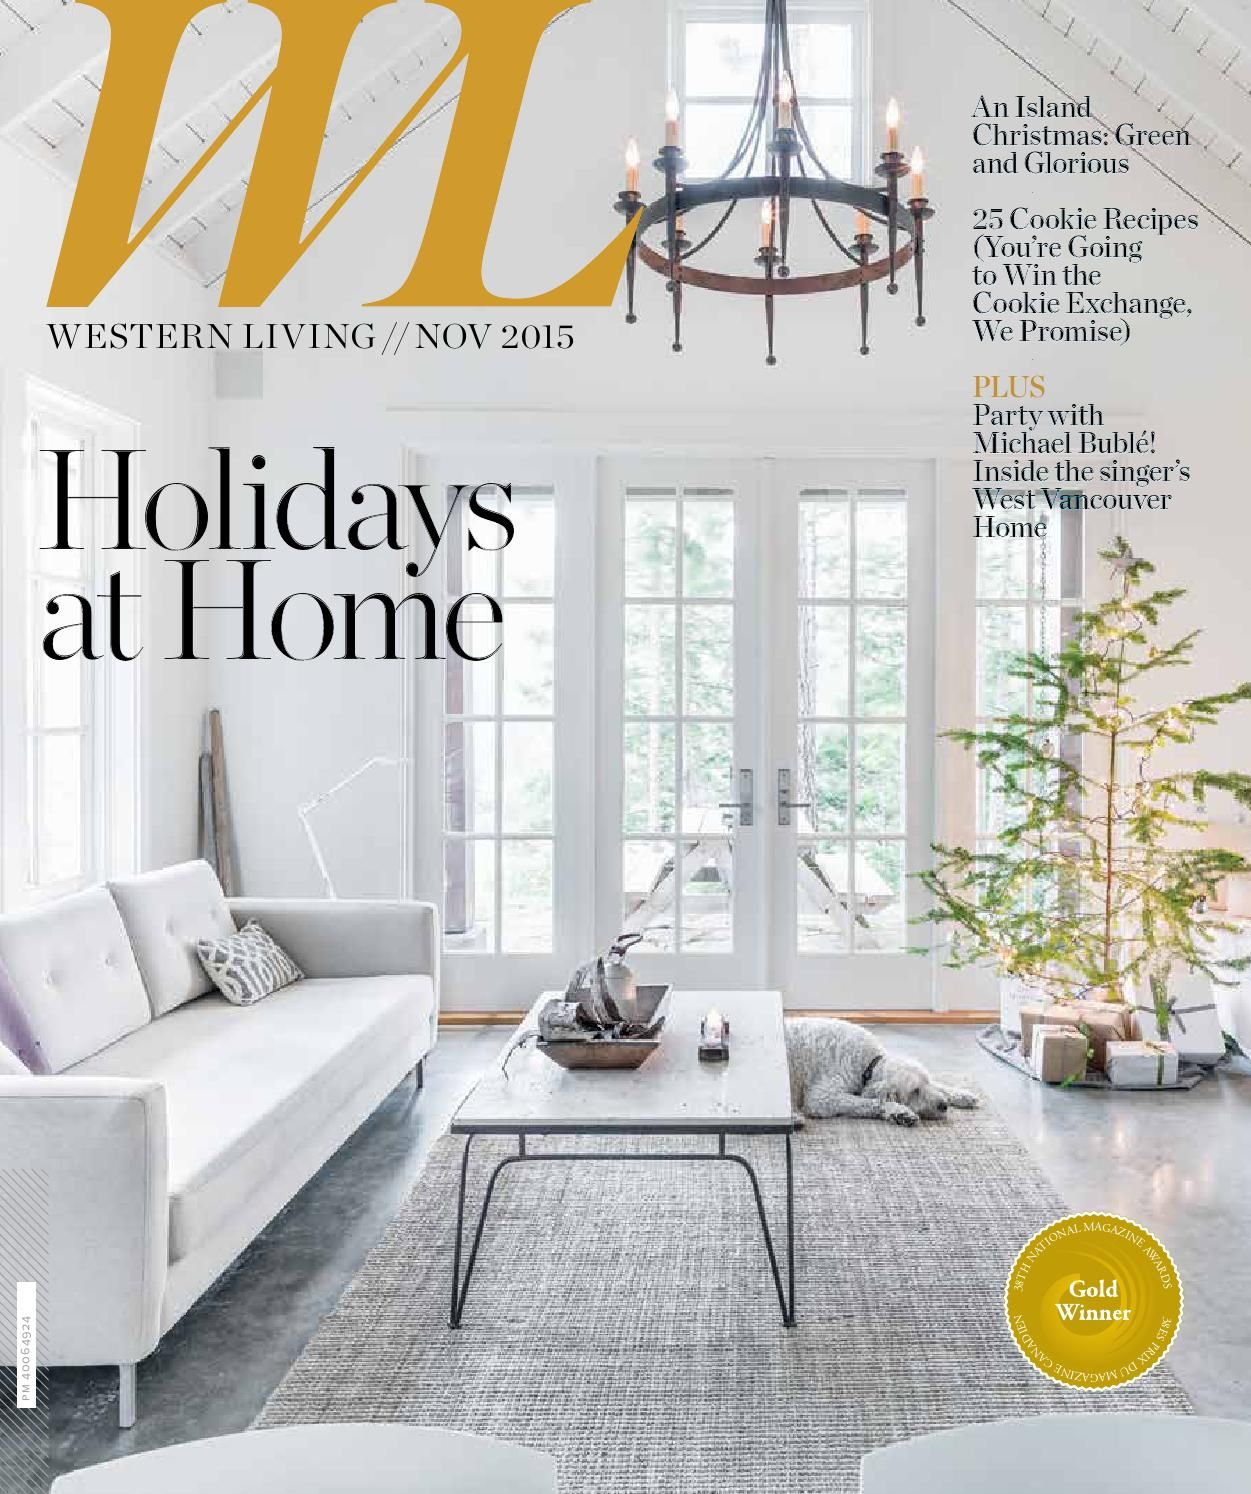 Western Living - BC, November2015   Living magazine, Westerns and ...